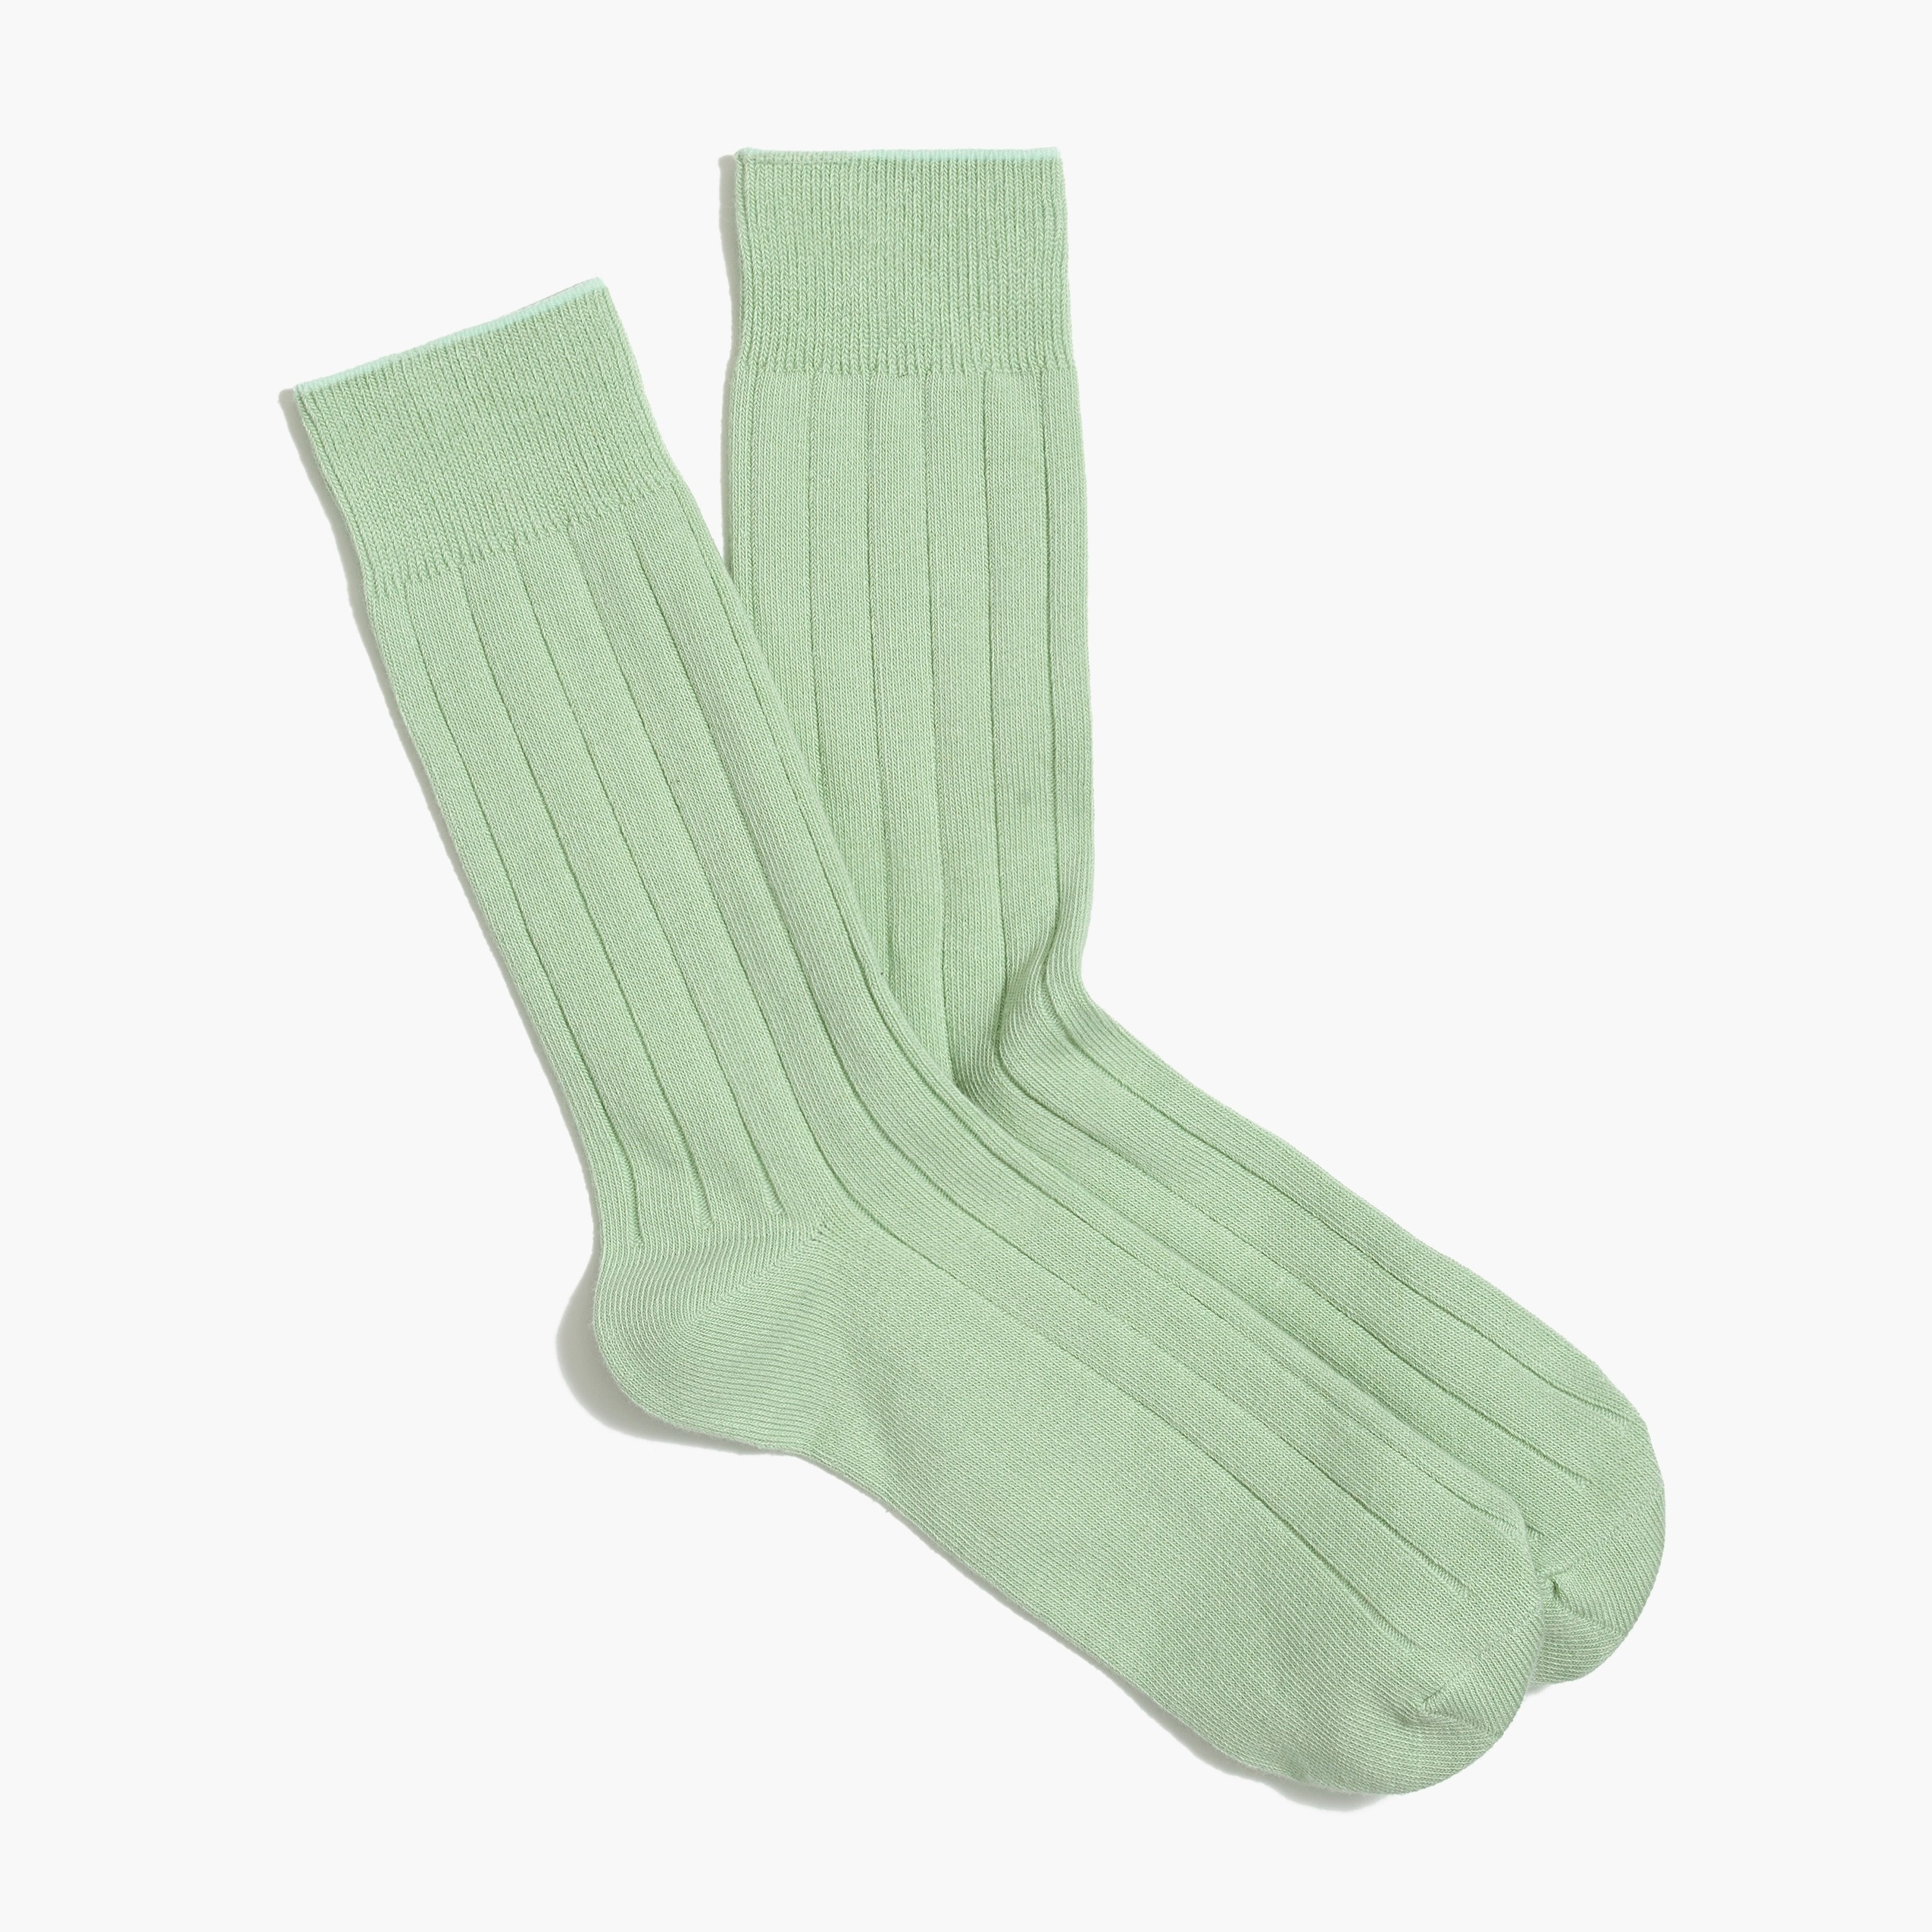 j.crew factory: solid color socks